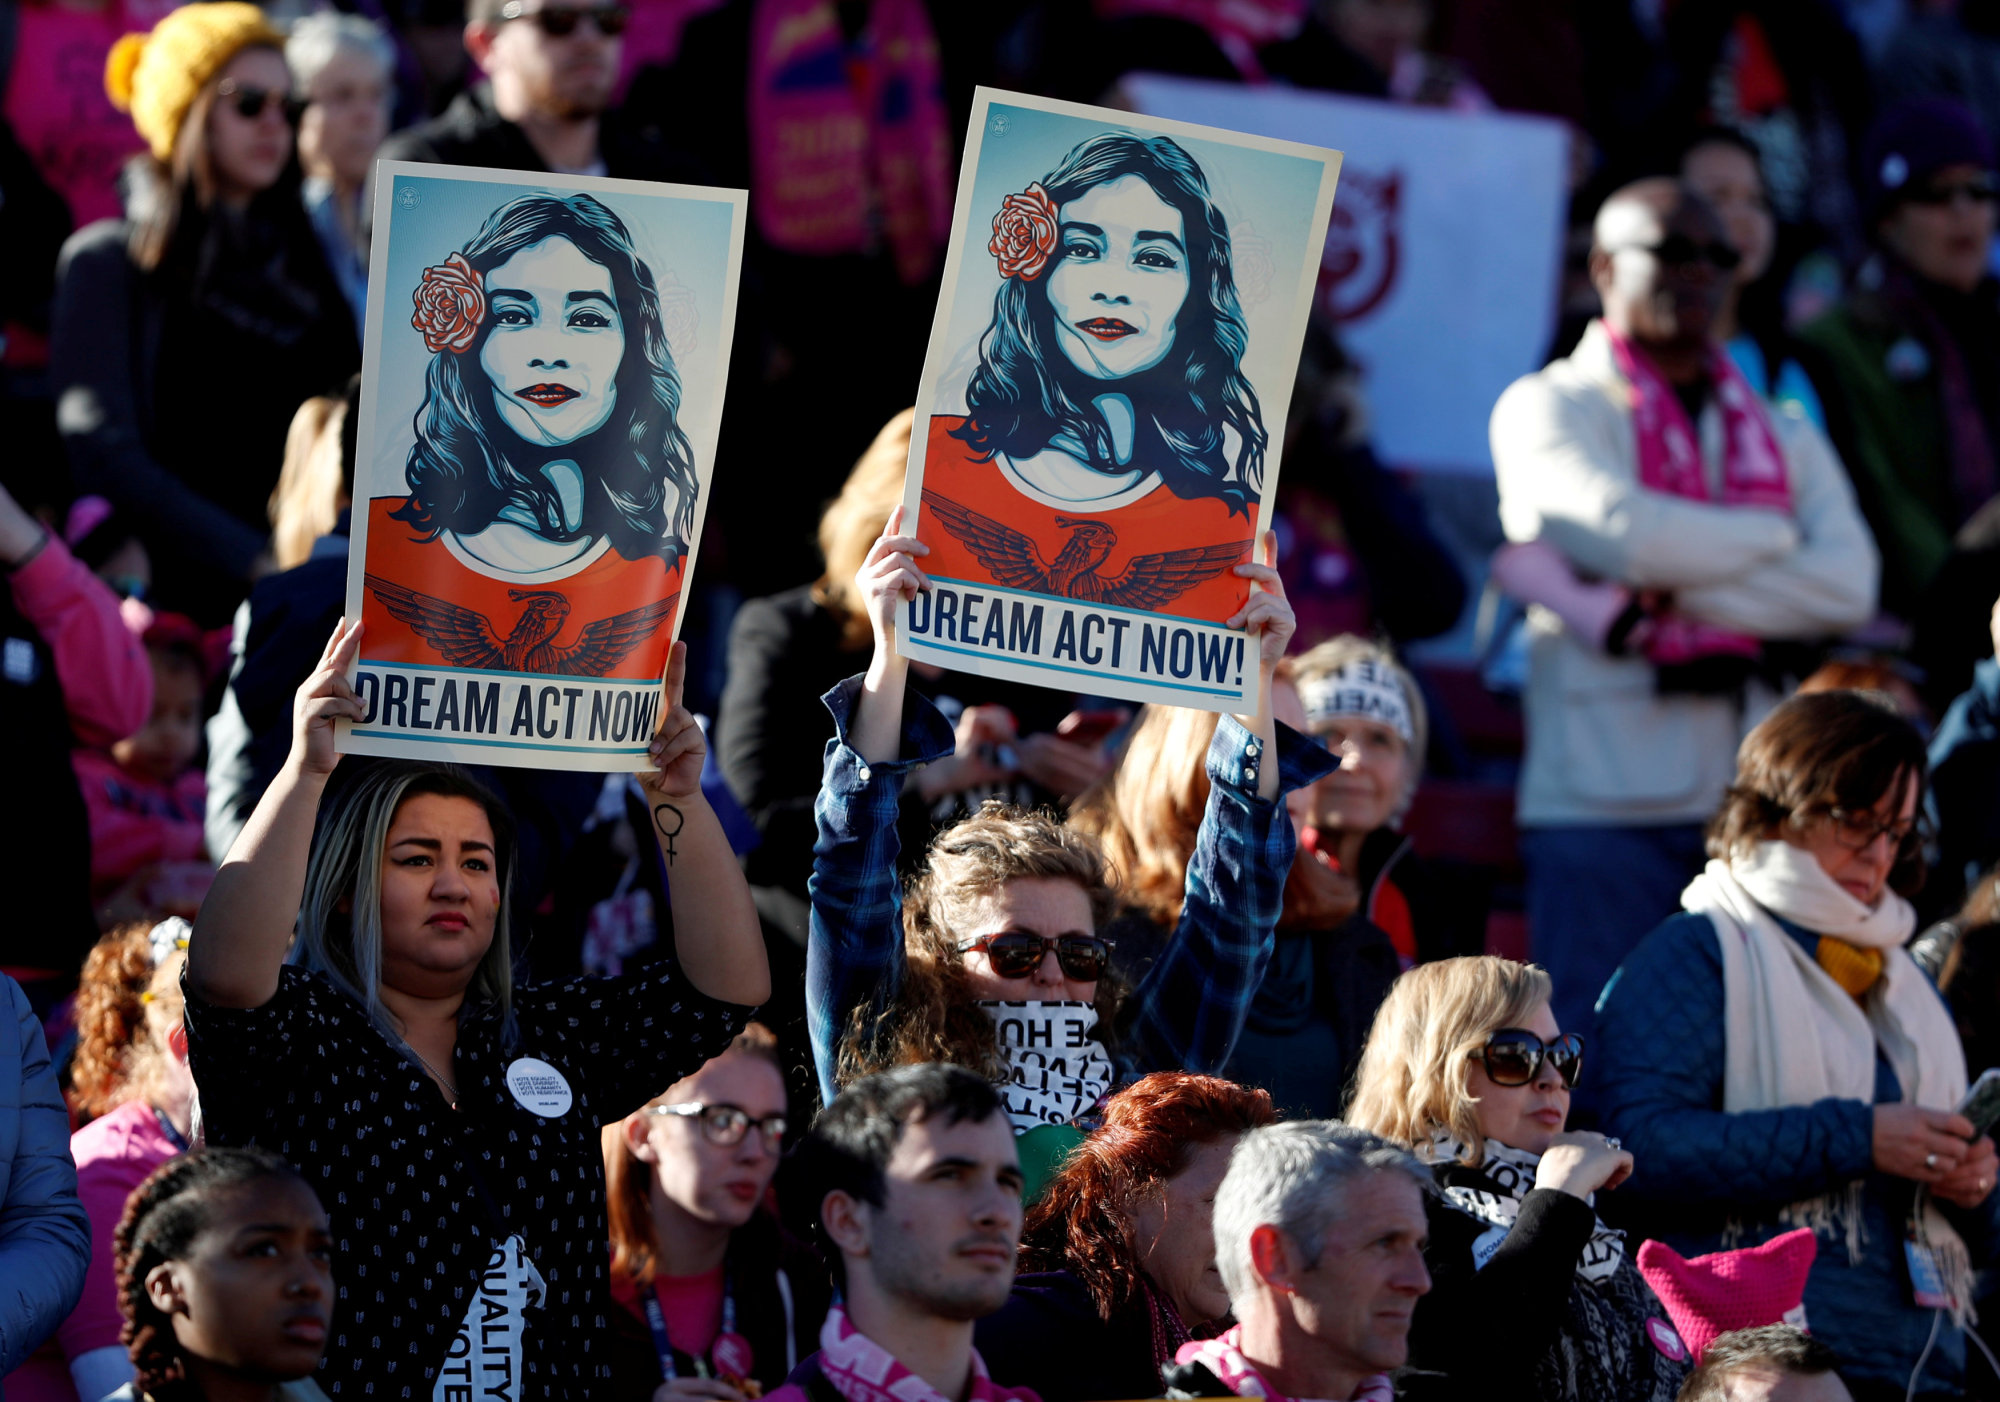 Supporters of Deferred Action for Childhood Arrivals (DACA) hold signs during the Women's March rally in Las Vegas last January. | REUTERS